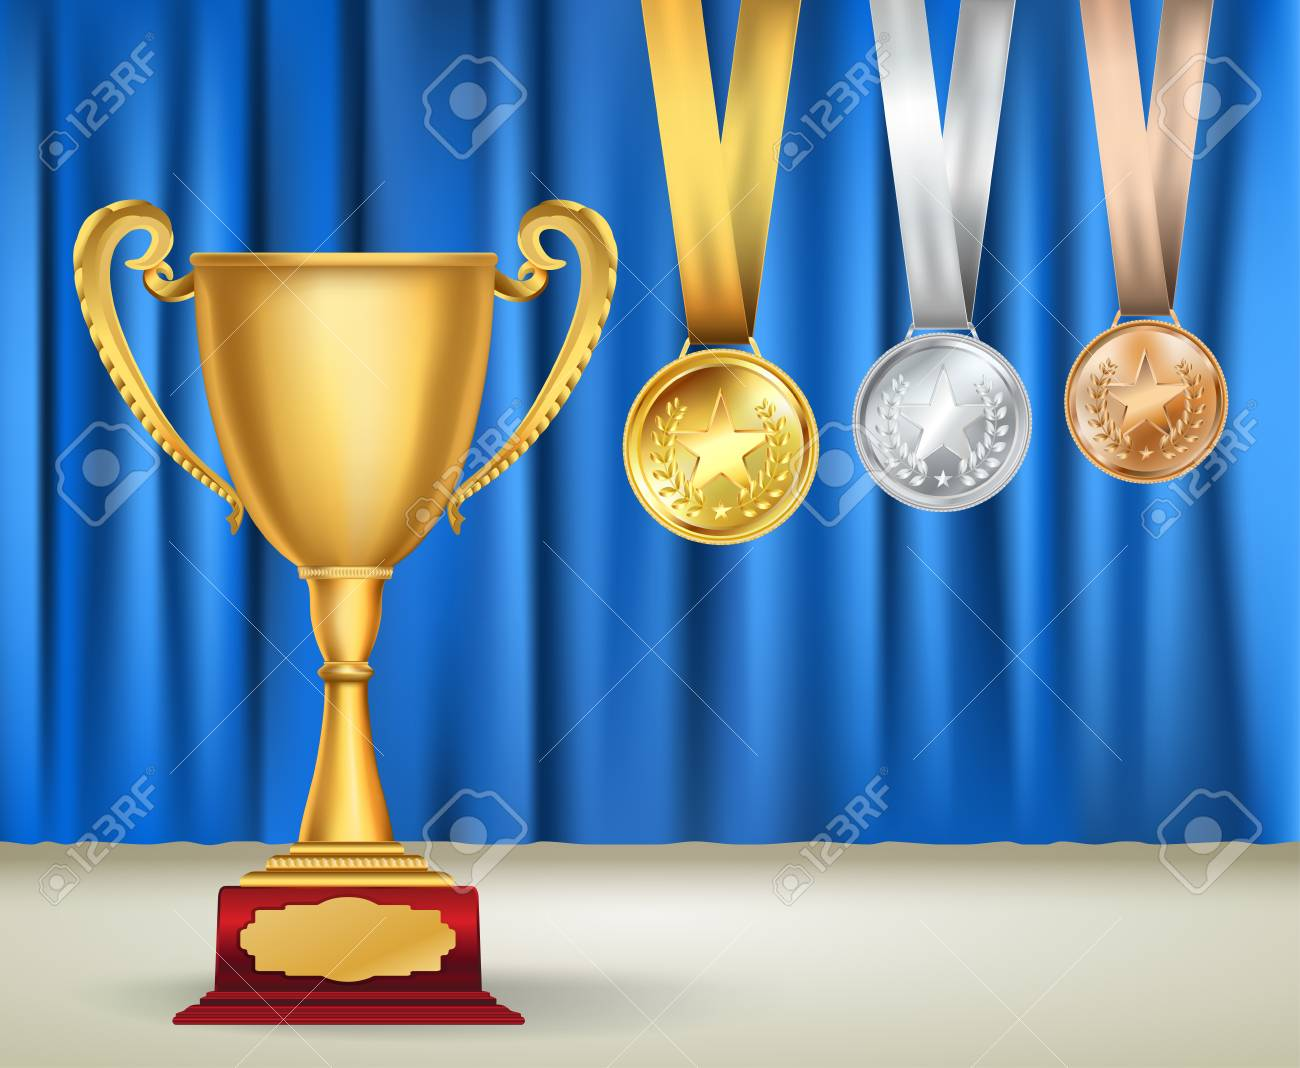 Golden Trophy Cup And Set Of Medals With Ribbons On Blue Curtain Background Sports Competition